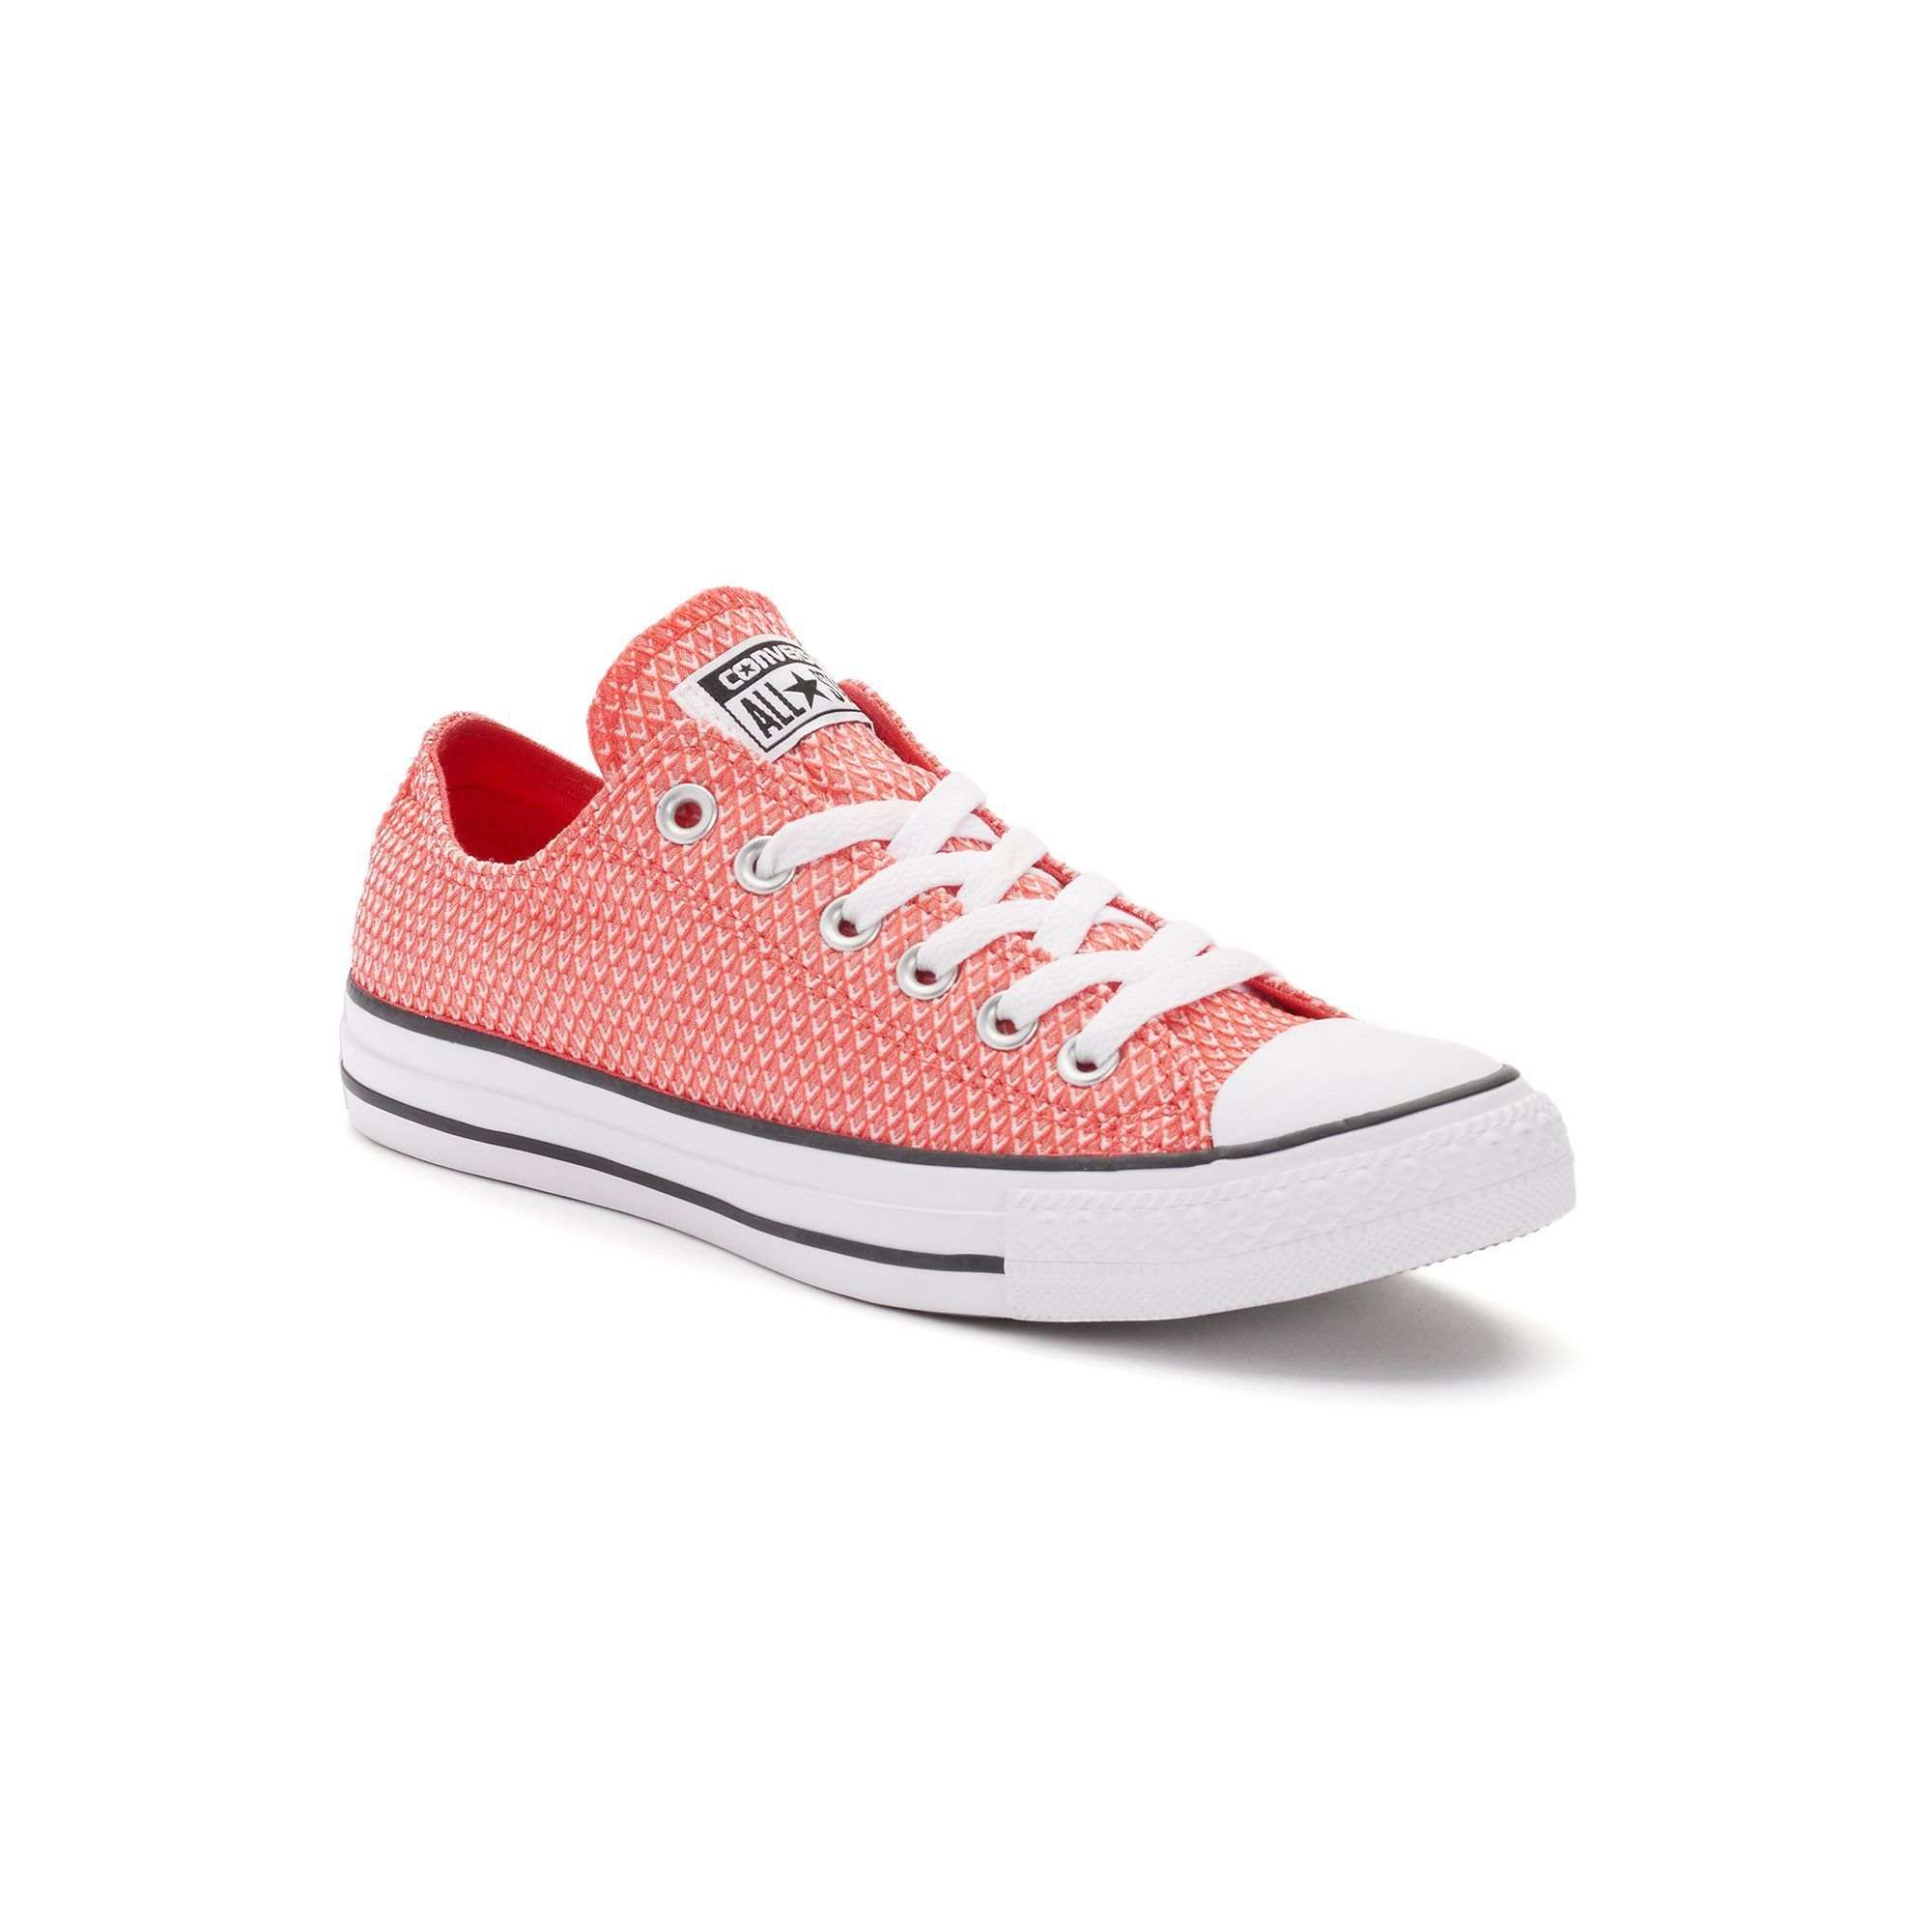 Women's Converse Chuck Taylor All Star Snakeskin Knit Shoes